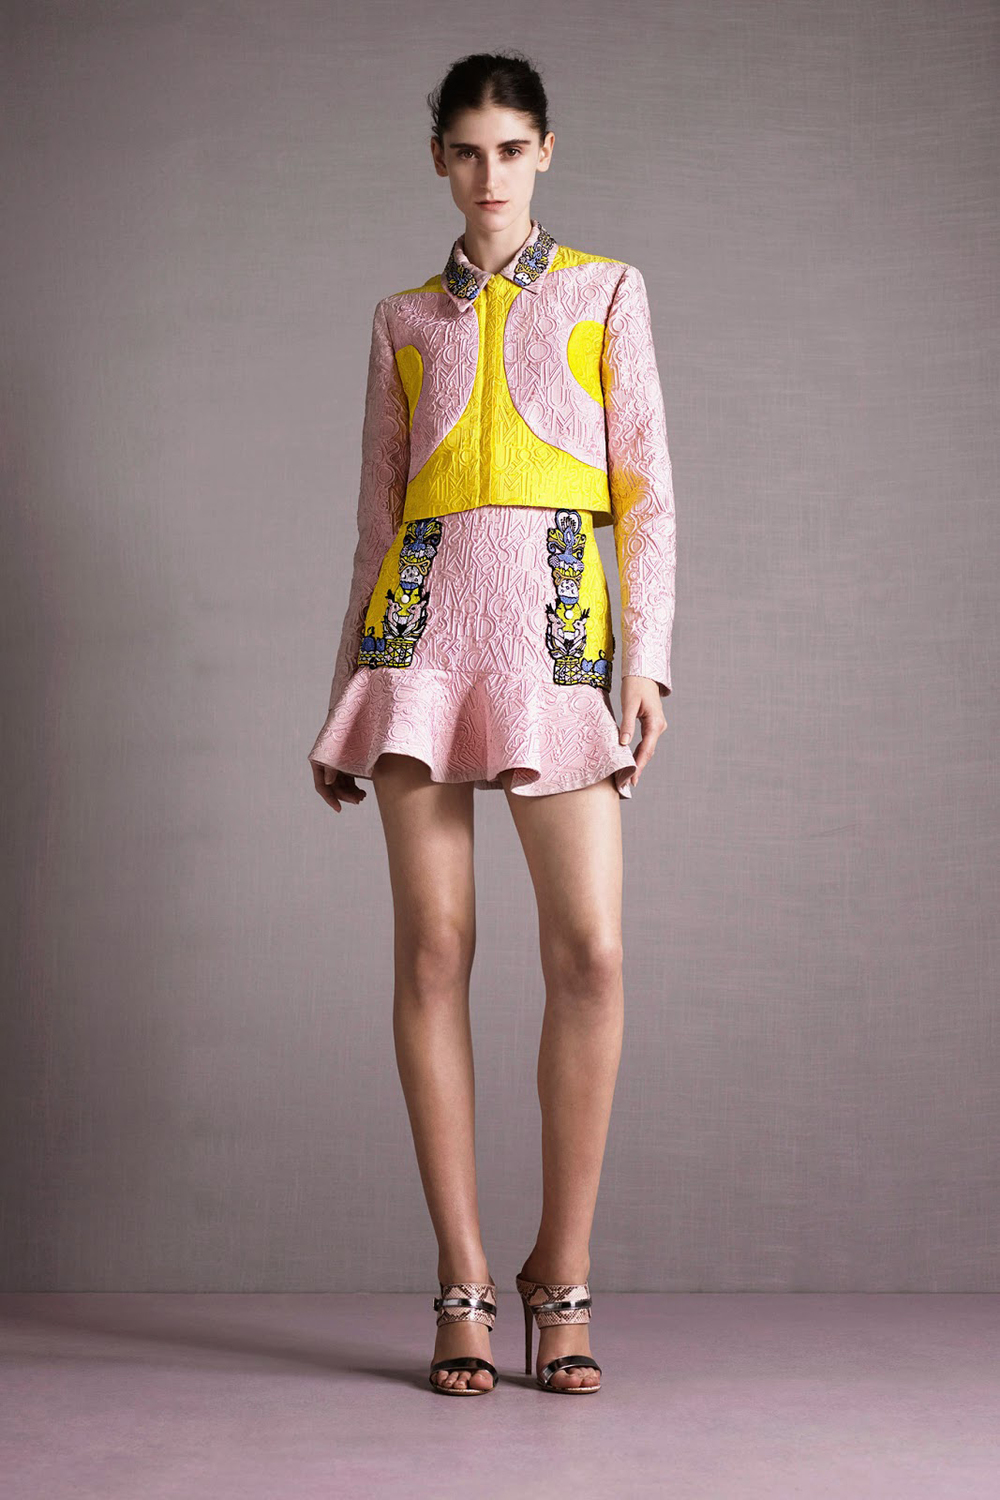 Mary-Katrantzou-Resort-2015-Collection-Lookbook-Fashion-3.jpg